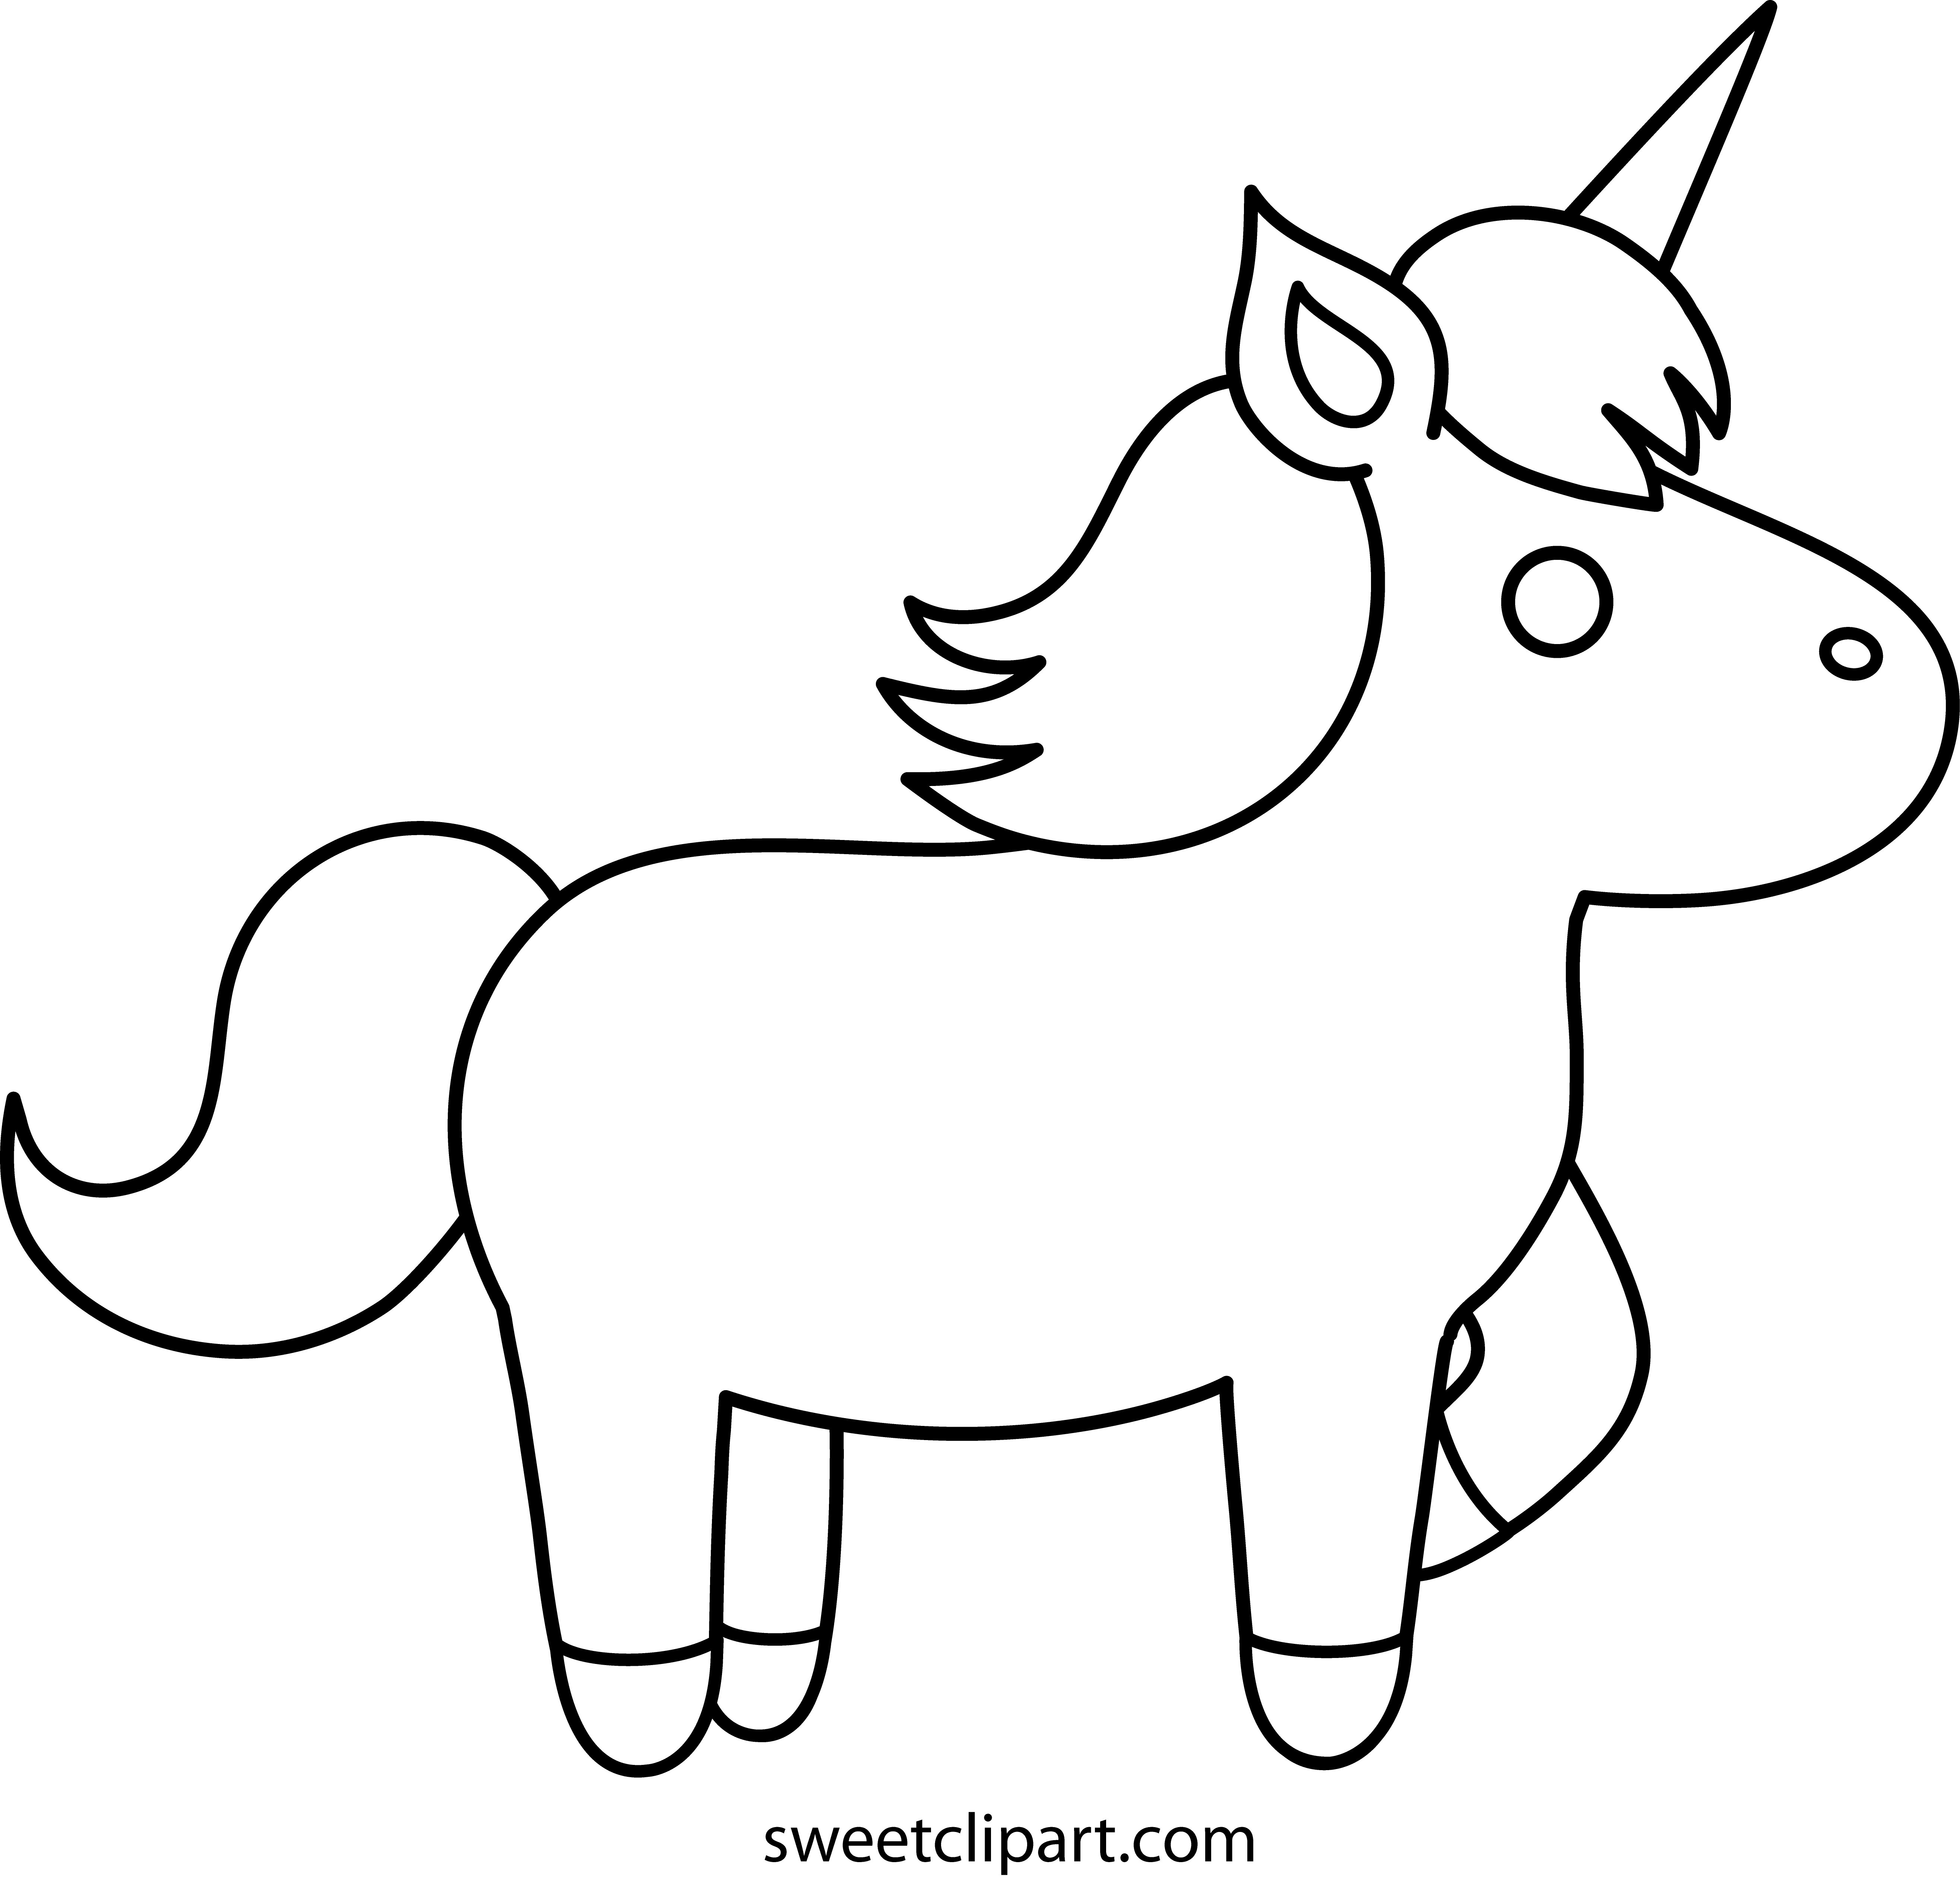 baby easy unicorn coloring pages cute unicorn baby coloring pages printable pages unicorn easy coloring baby